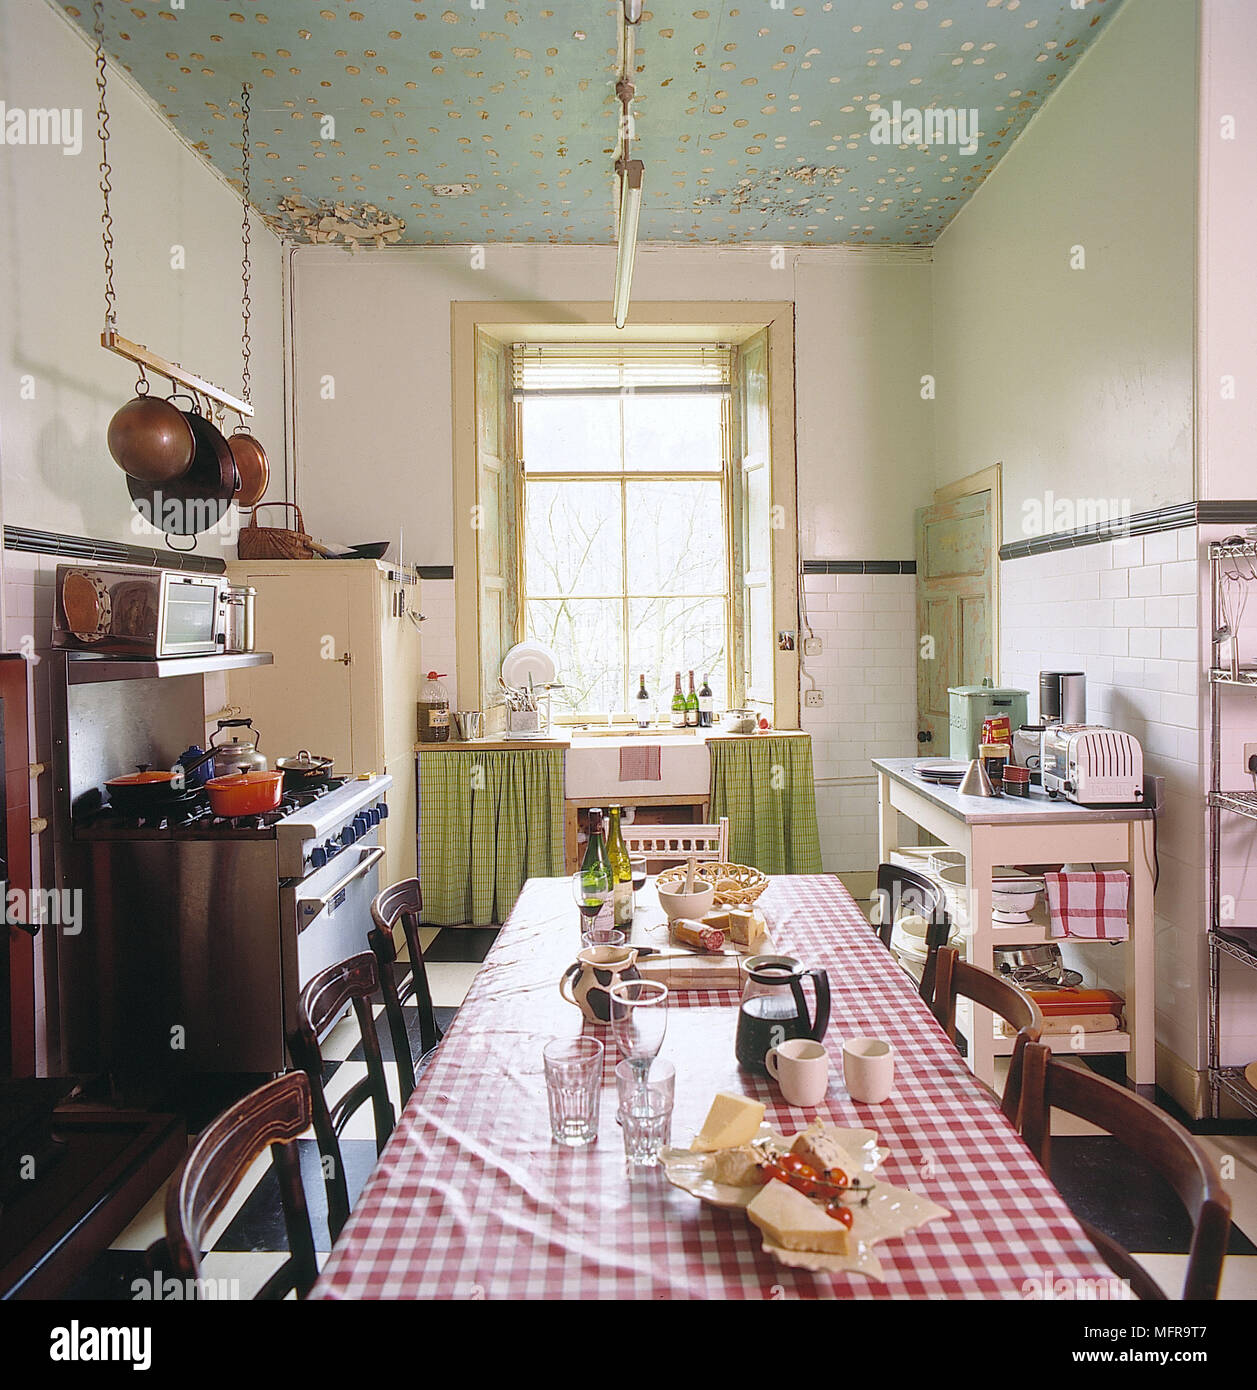 Kitchen White Walls Green Gold Ceiling Bay Window Venetian Blinds Long  Table Wooden Chairs Appliances Interiors Rooms Dining Area Kitchens  Utensils Ha